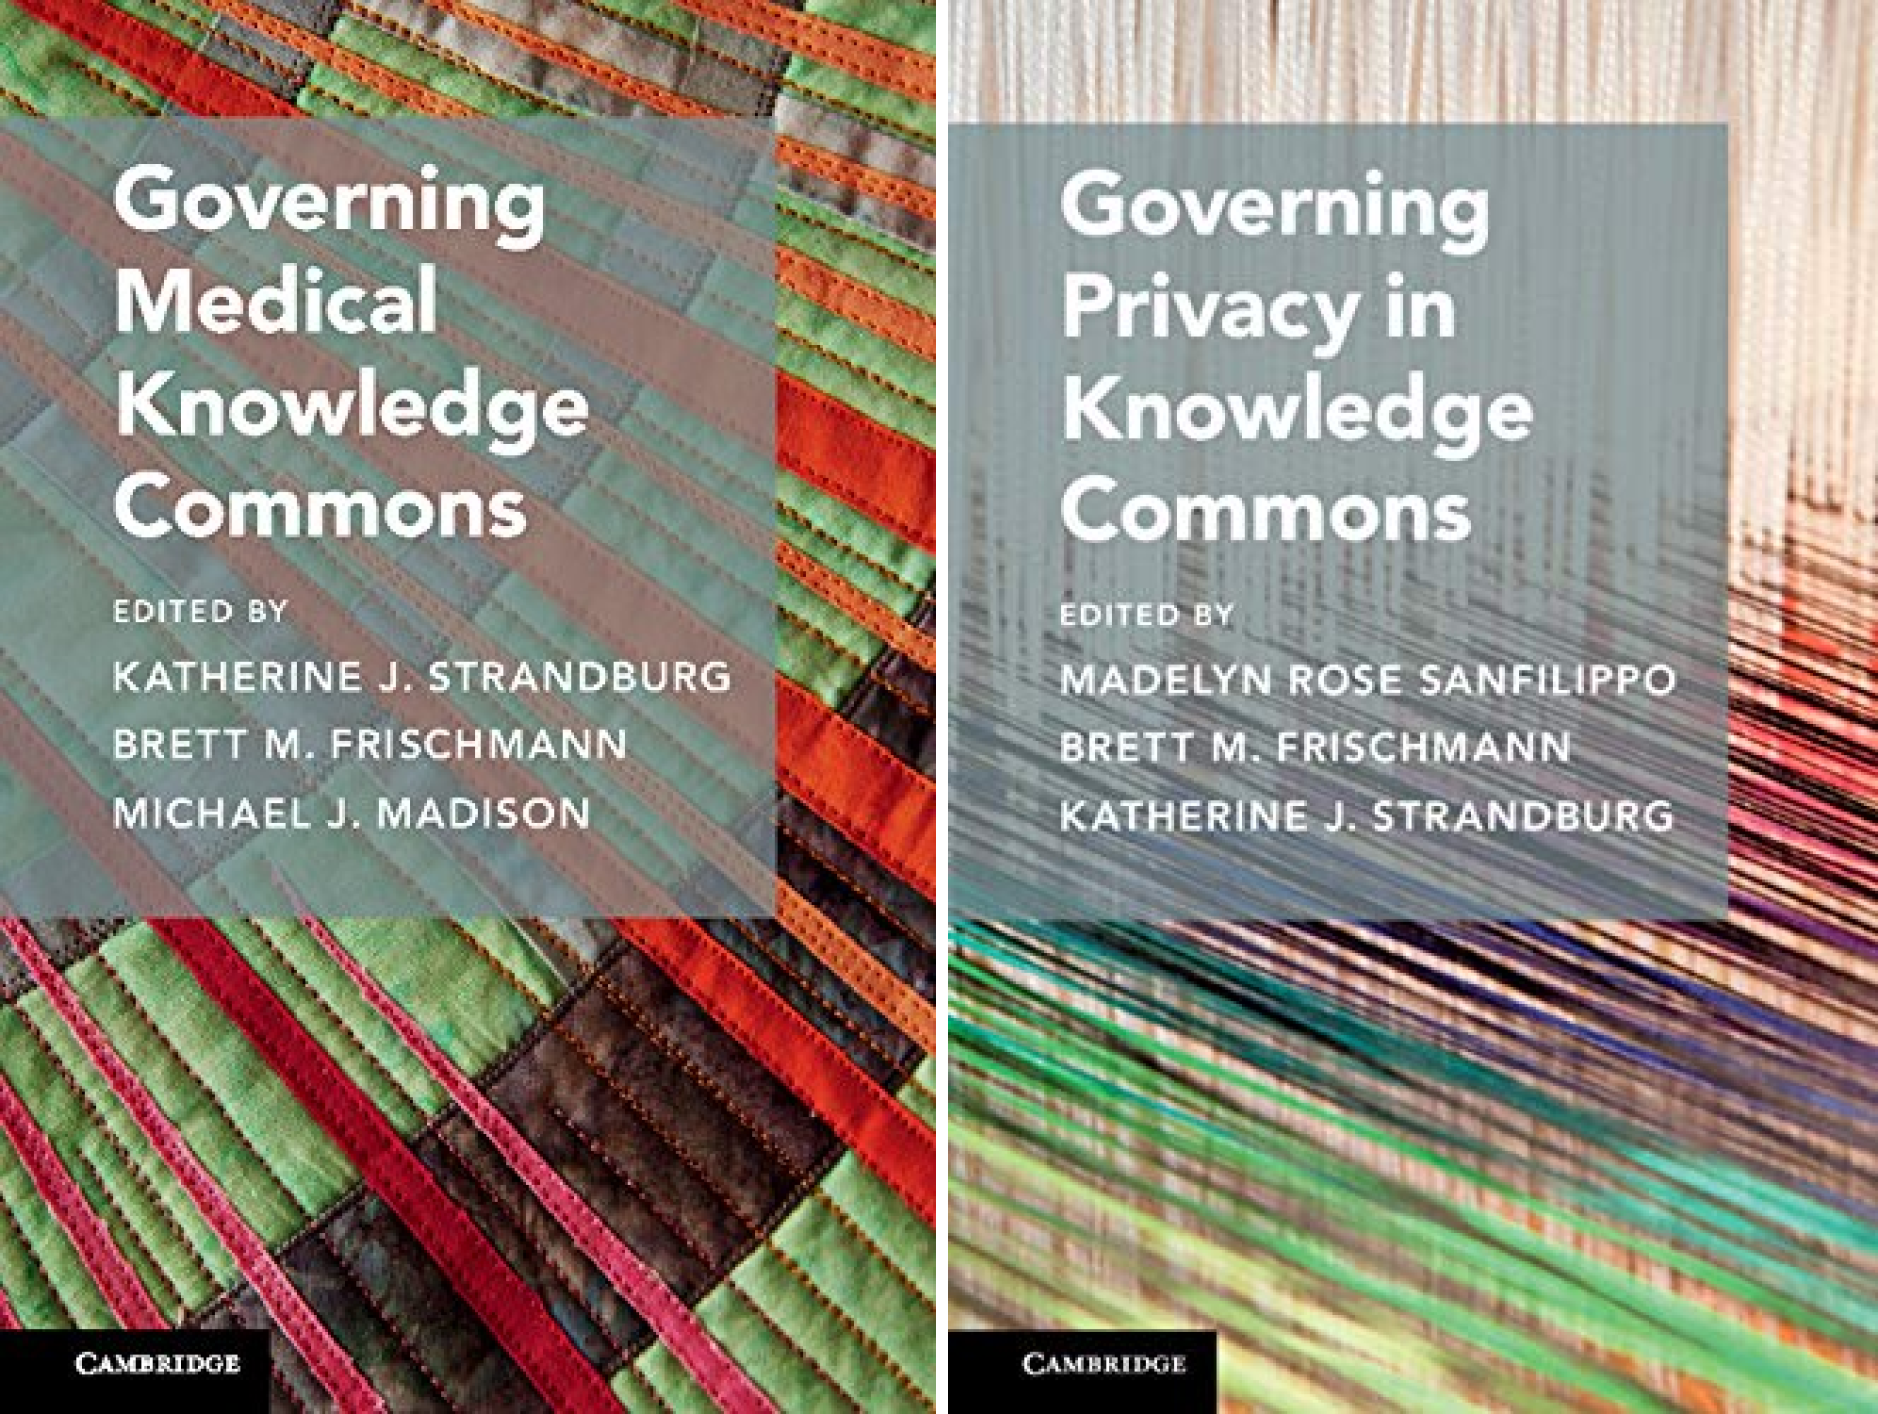 Cambridge Studies on Governing Knowledge Commons (2 Book Series)